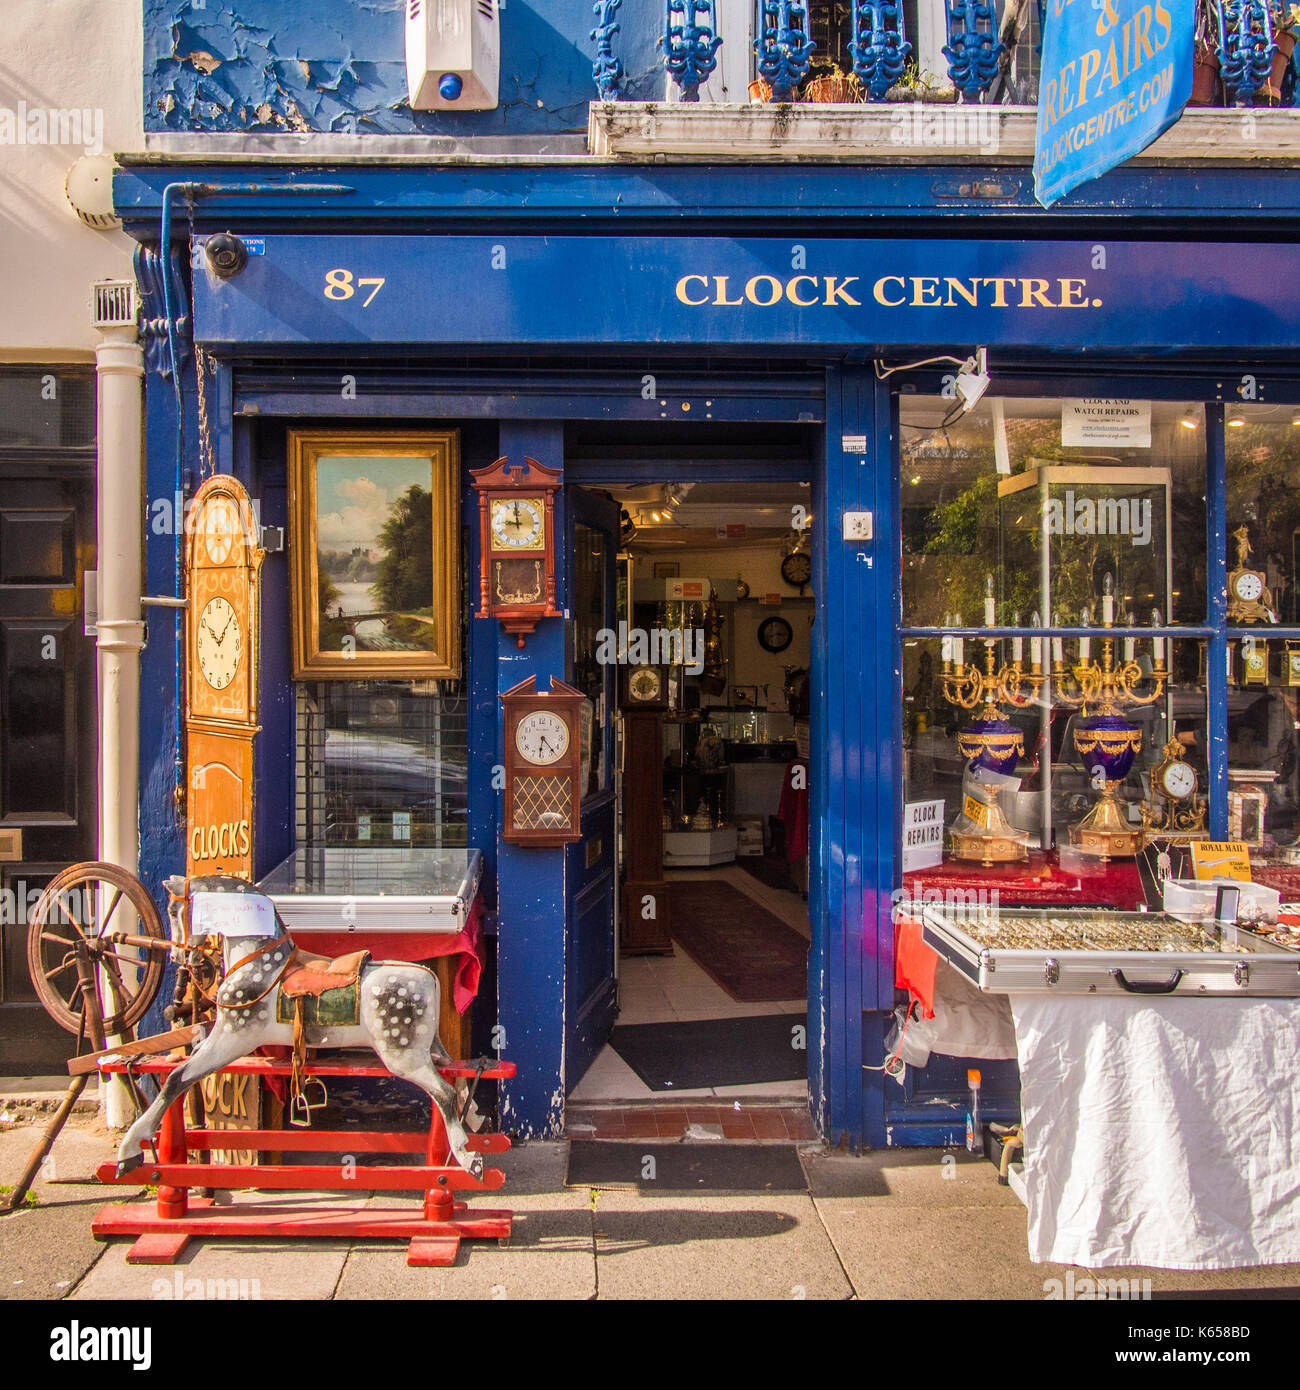 Curiosities/souvenirs for sale at Portabello Road, Notting Hill, London. - Stock Image